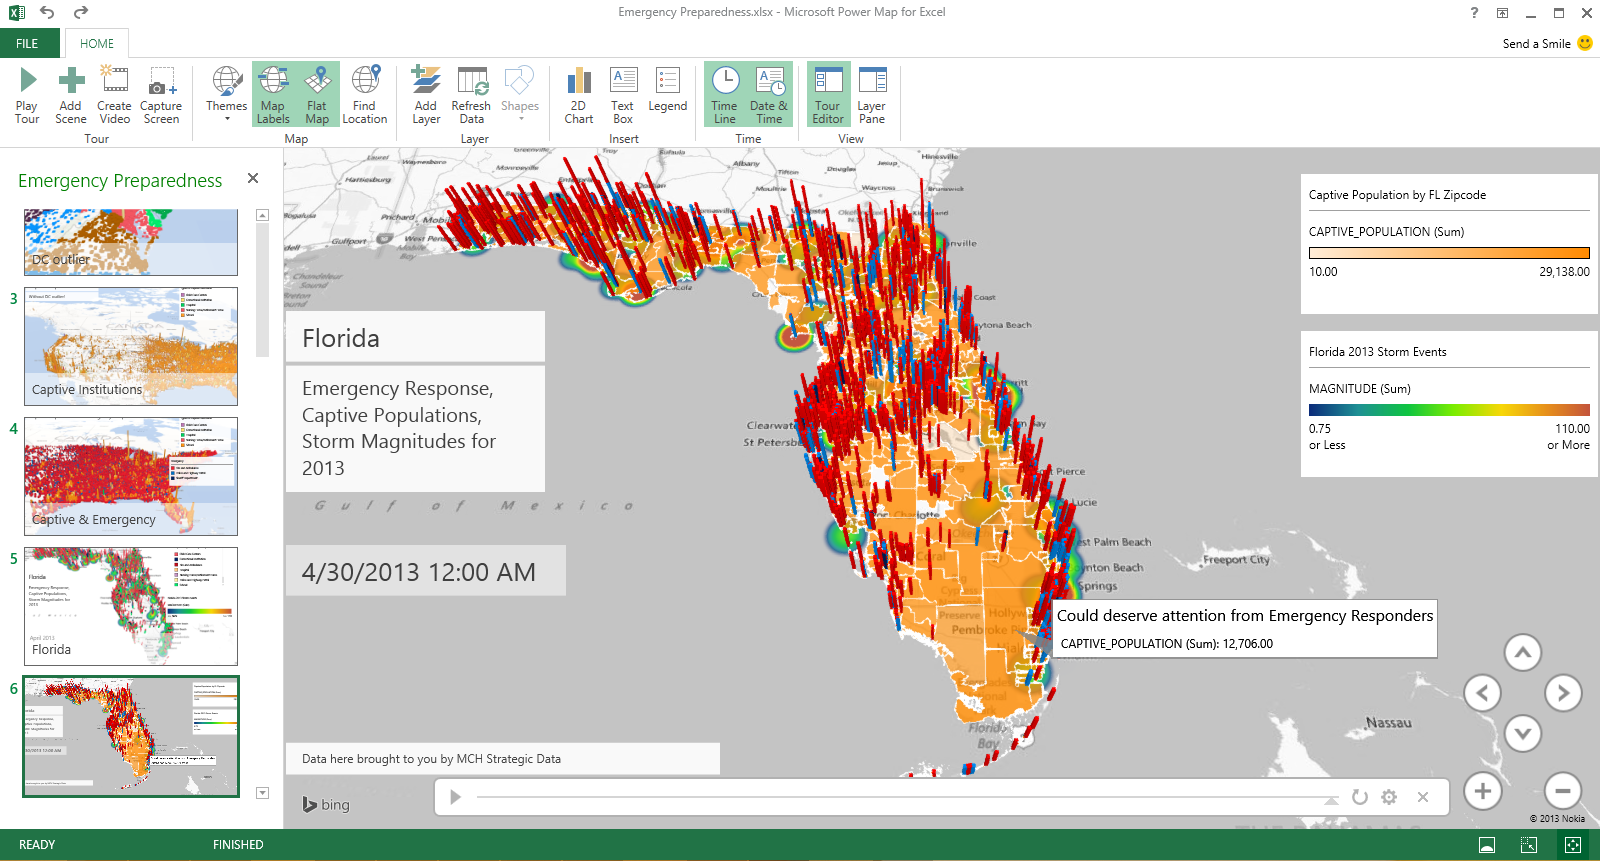 Ediblewildsus  Surprising Power Map For Excel Now Generally Available Automatically Updated  With Inspiring Power Map For Excel Now Generally Available Automatically Updated For Office  With Enchanting How To Create A Graph In Excel Also How To Freeze Panes In Excel In Addition Transpose Excel And How To Make A Histogram In Excel As Well As Index Excel Additionally Excel Saga From Powerbimicrosoftcom With Ediblewildsus  Inspiring Power Map For Excel Now Generally Available Automatically Updated  With Enchanting Power Map For Excel Now Generally Available Automatically Updated For Office  And Surprising How To Create A Graph In Excel Also How To Freeze Panes In Excel In Addition Transpose Excel From Powerbimicrosoftcom